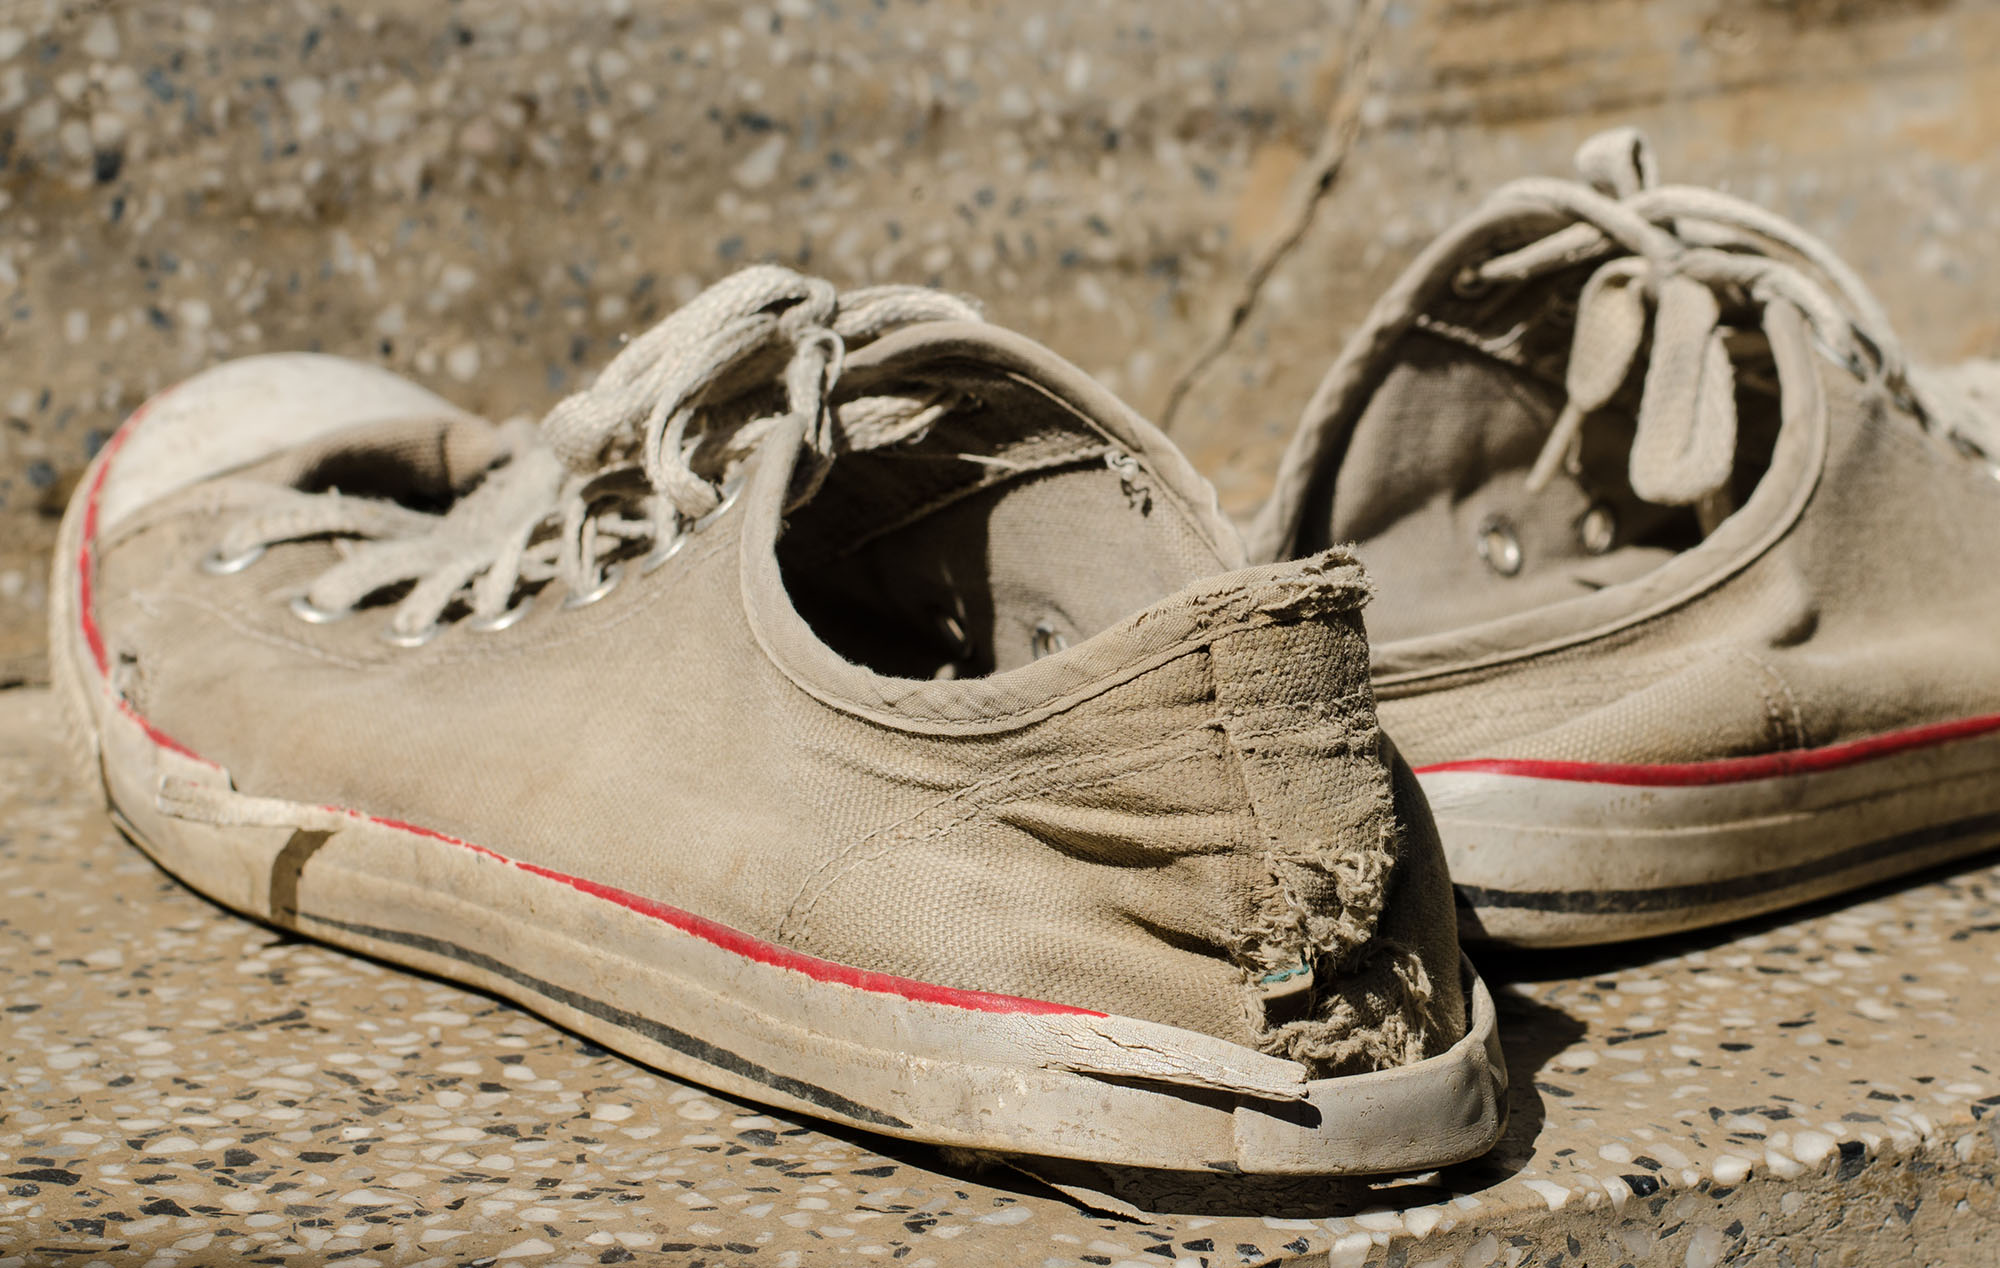 Can Worn Out Shoes Cause Back & Knee Pain?